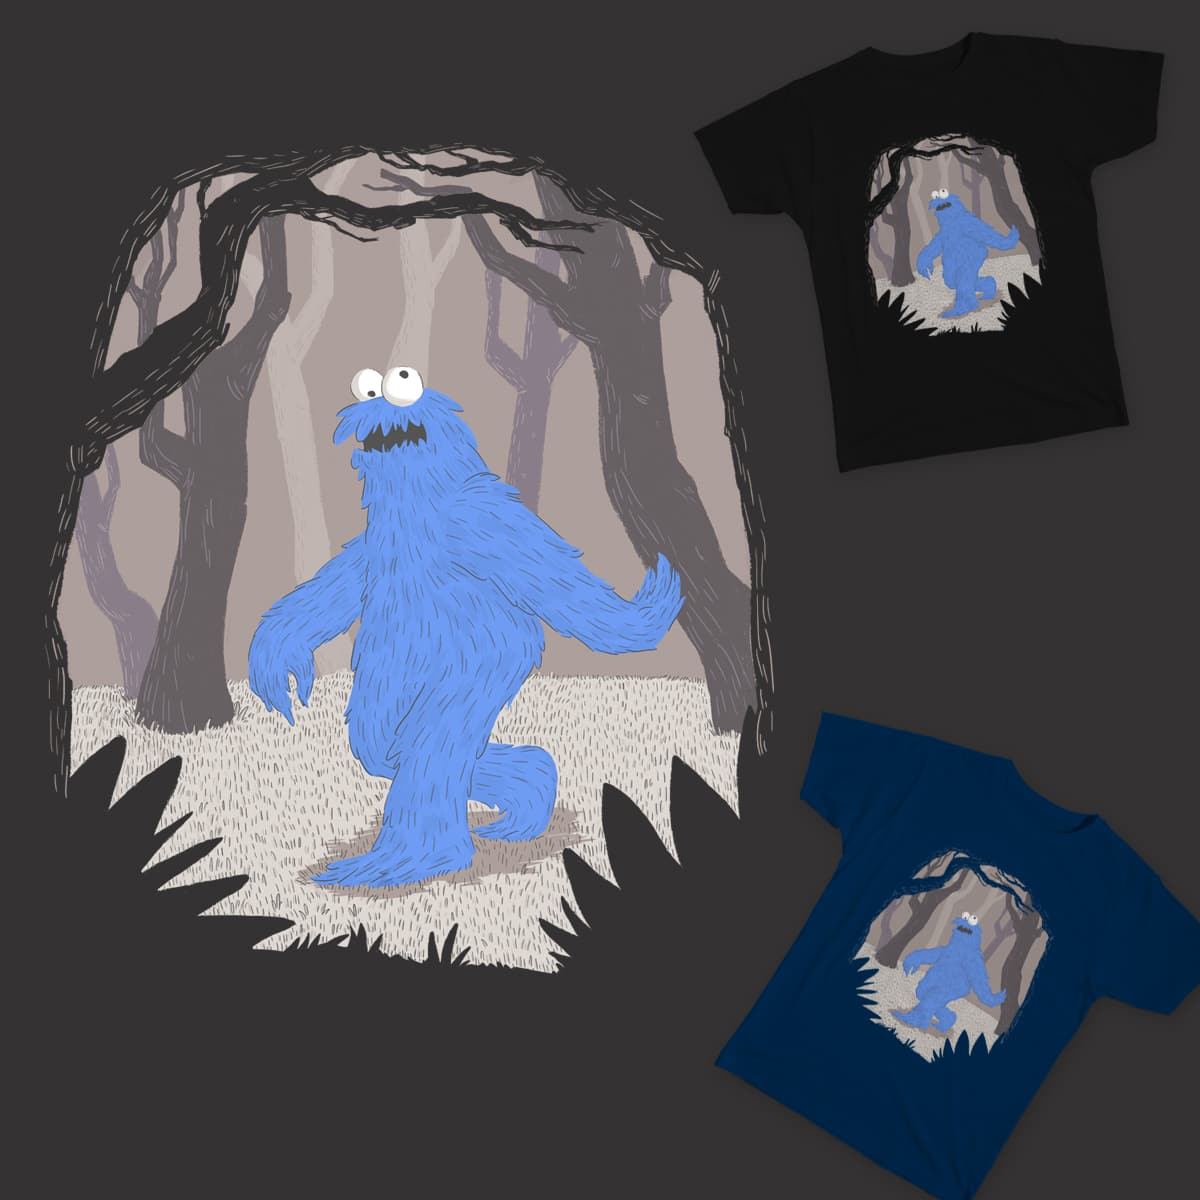 The Missing Link by lxromero on Threadless